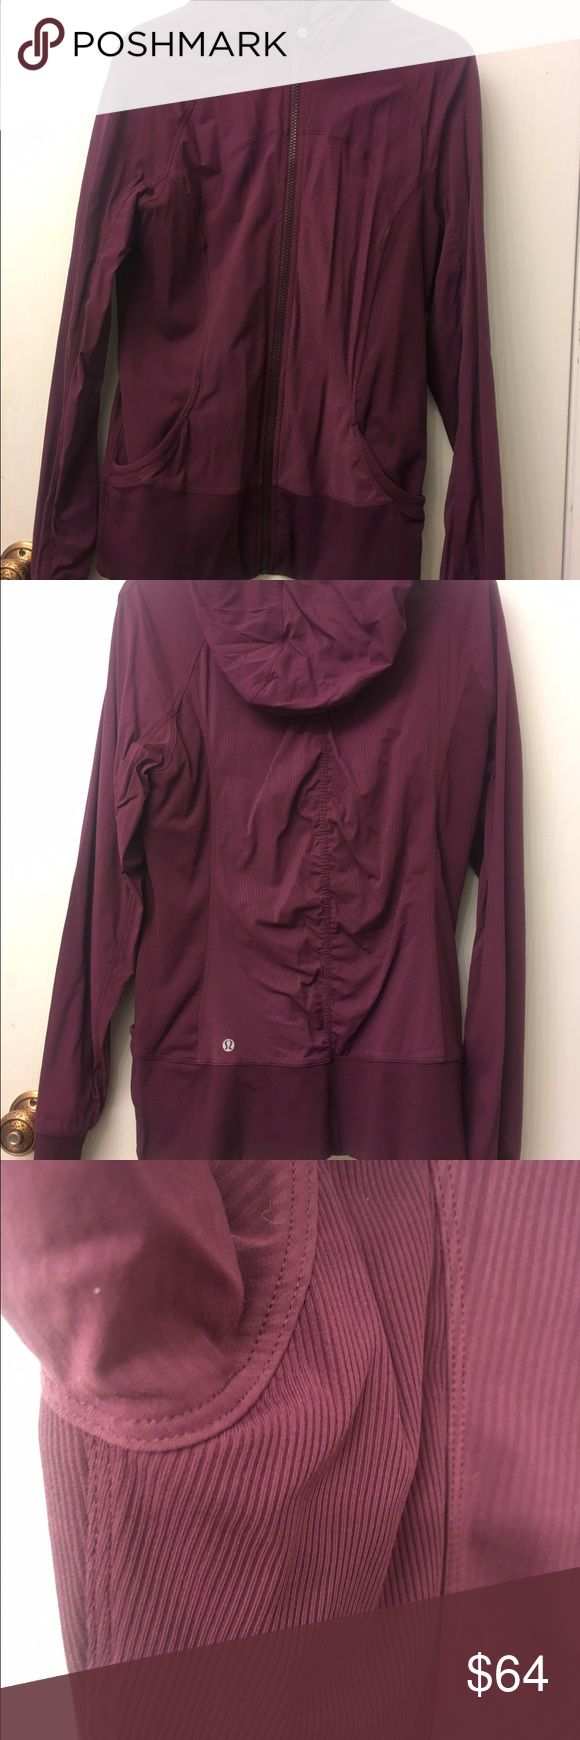 50% off retail! Lululemon In Flux Jacket sz 10 Comfortable and reversible! Throw it over a tank top after a workout or pair it with leggings or jeans to run errands around town. Nice jacket, worn once, no tears, stains, snags or pilling. Smoke free home. lululemon athletica Jackets & Coats